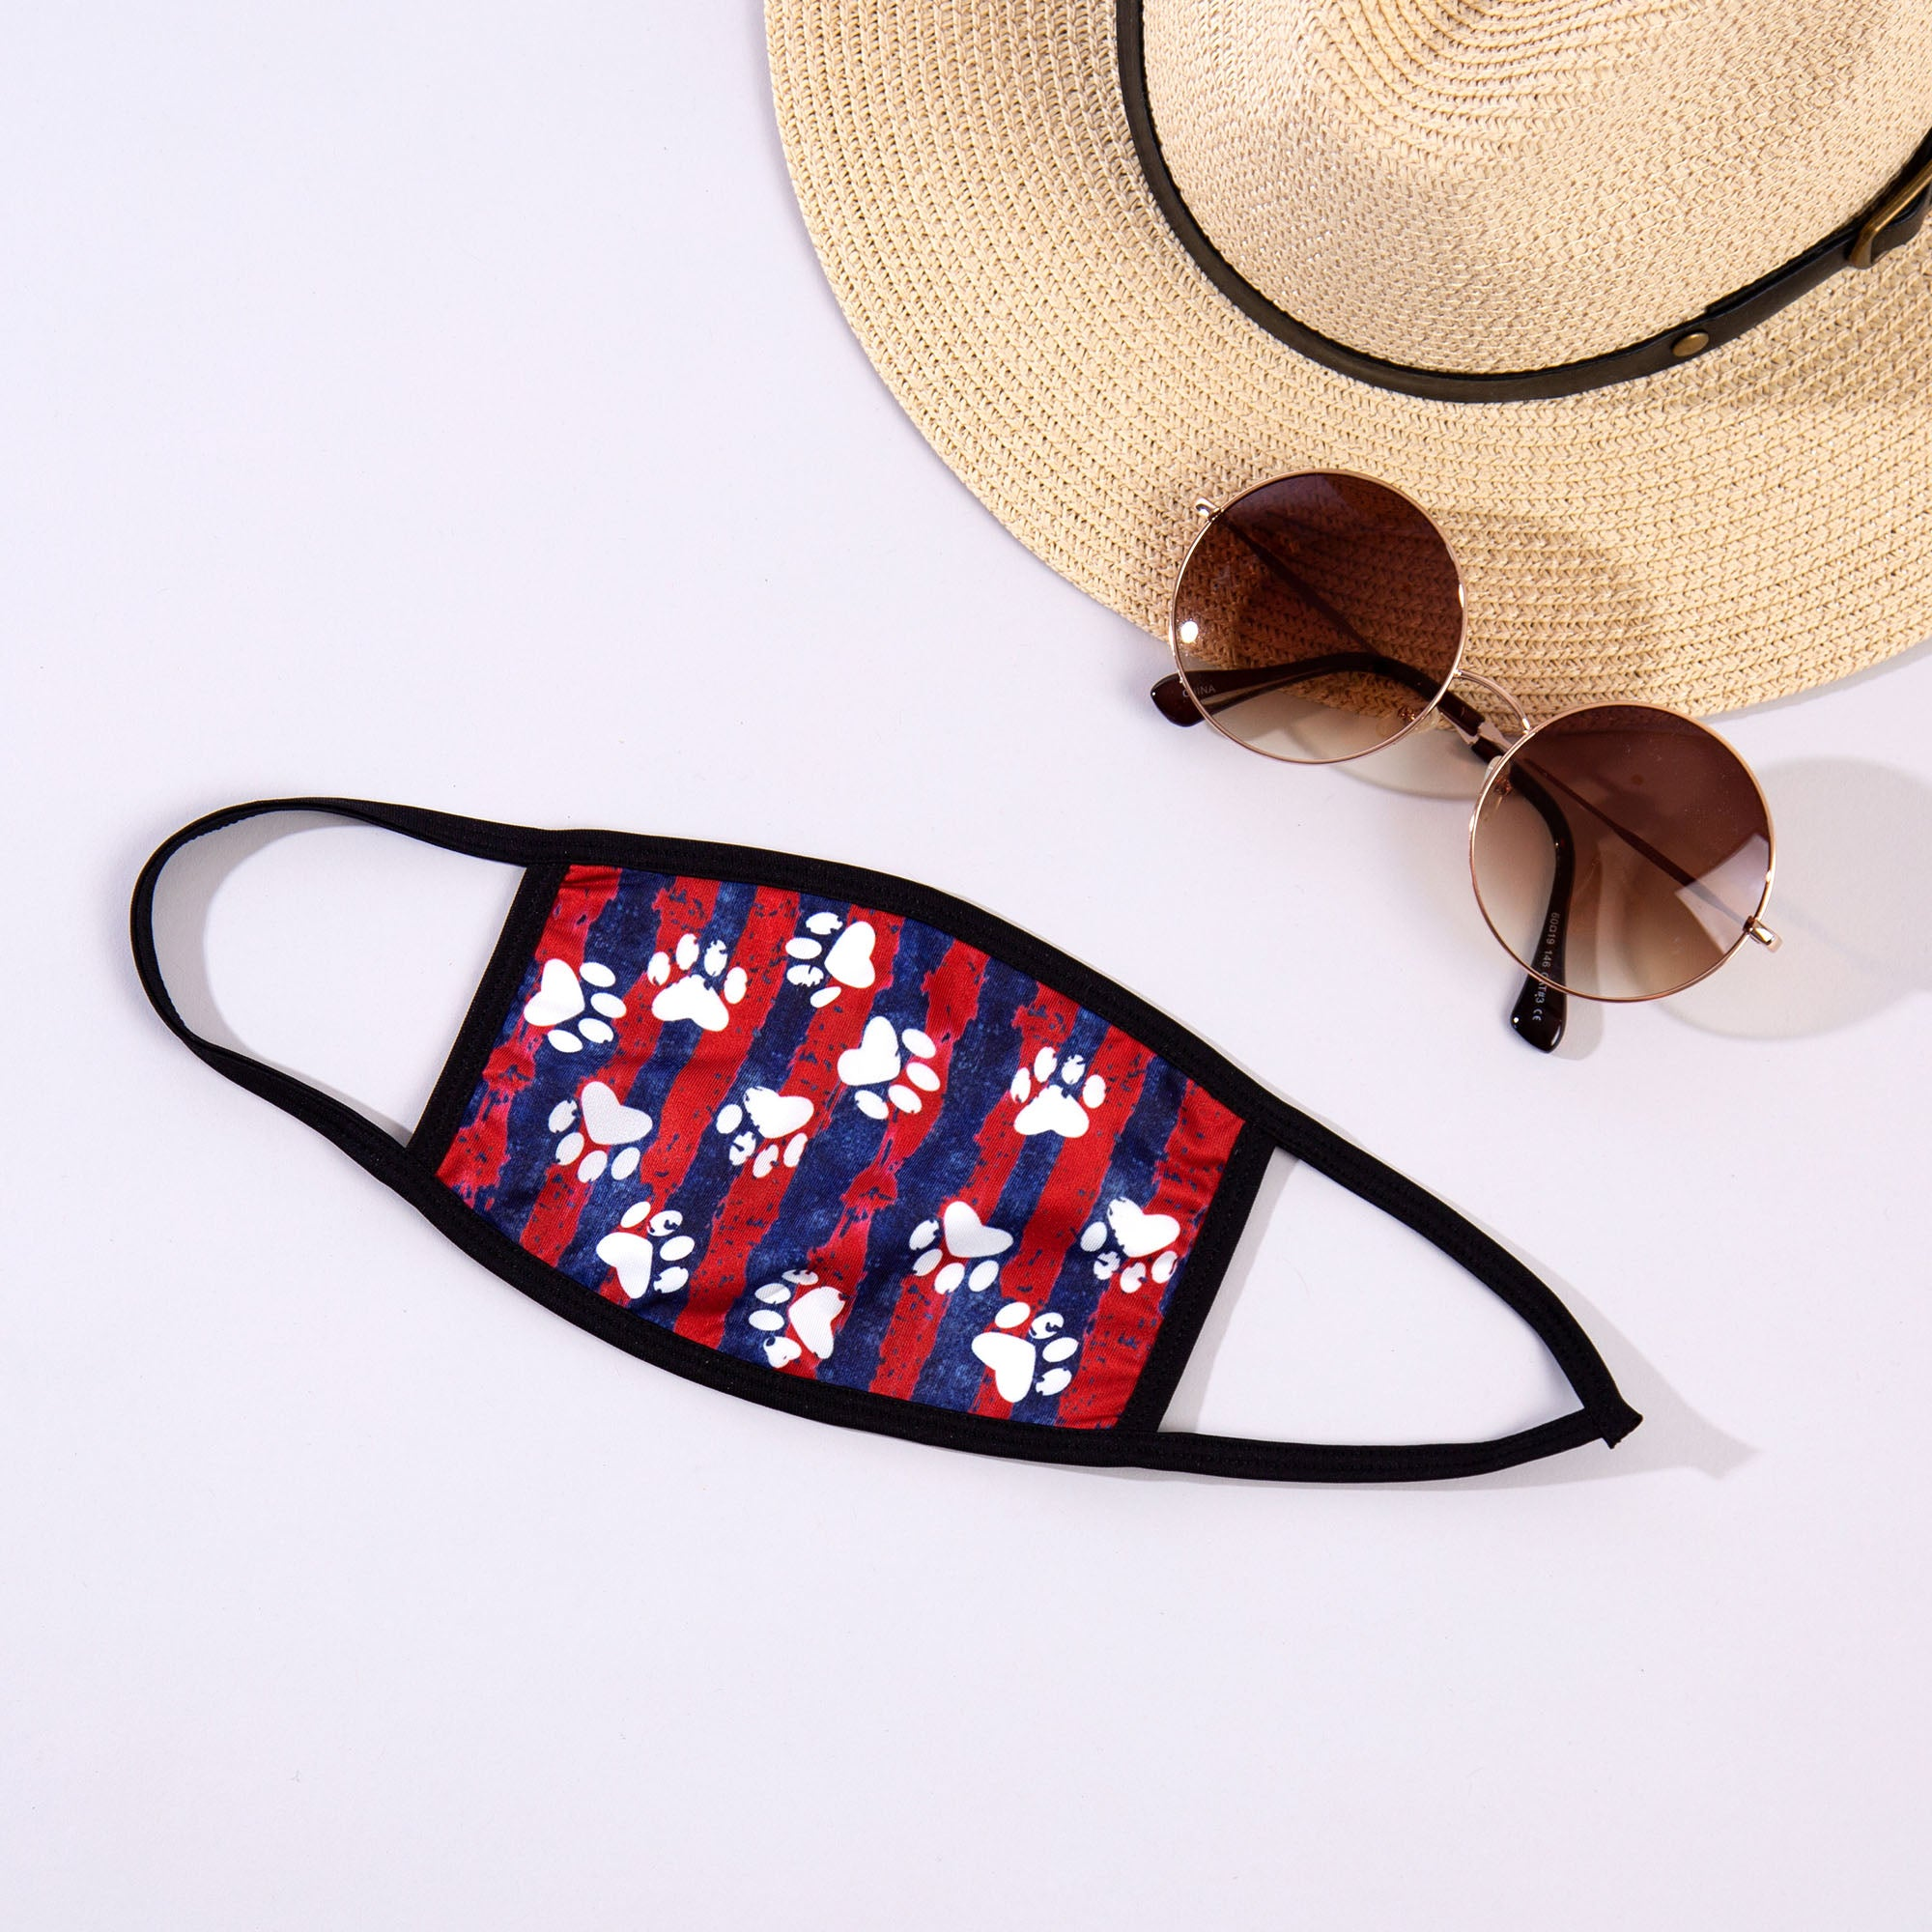 Paw Print Face Mask with Sunglasses and hat